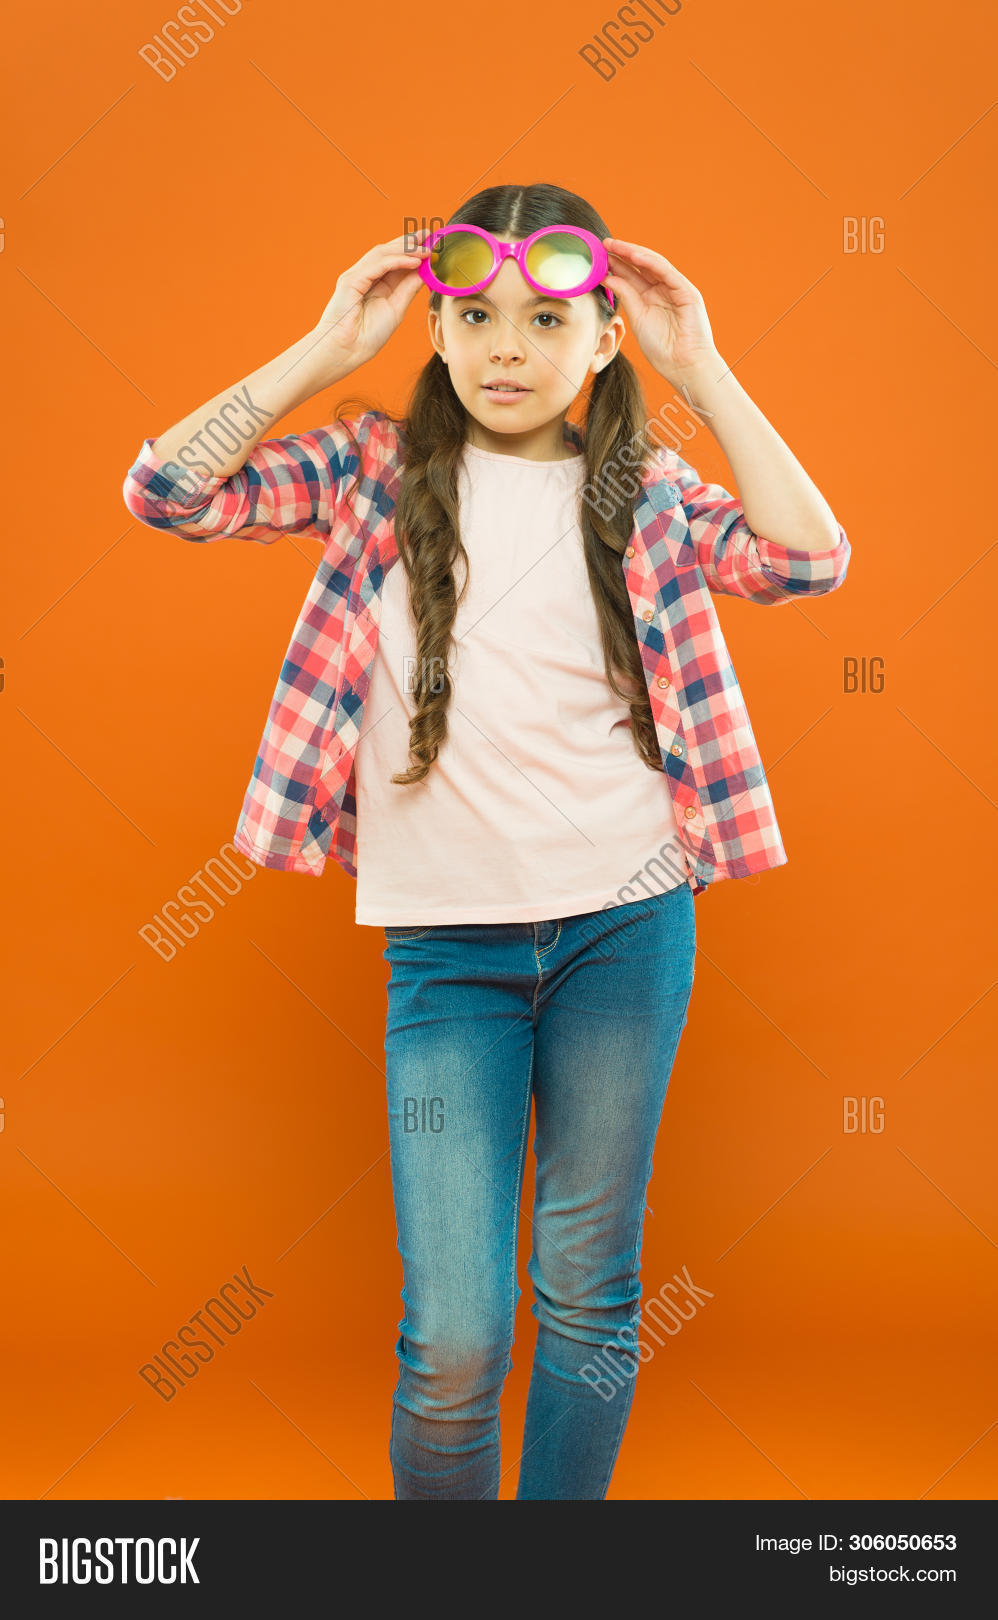 accessory,adorable,baby,background,beautiful,beauty,care,casual,child,childhood,color,cute,design,device,eyeglasses,eyes,eyesight,eyewear,fashion,fashionable,filter,frame,girl,glasses,goggles,hair,health,kid,lens,lenses,little,look,optical,optics,orange,sight,small,spectacles,style,stylish,sunglasses,sunnies,trend,trendy,vision